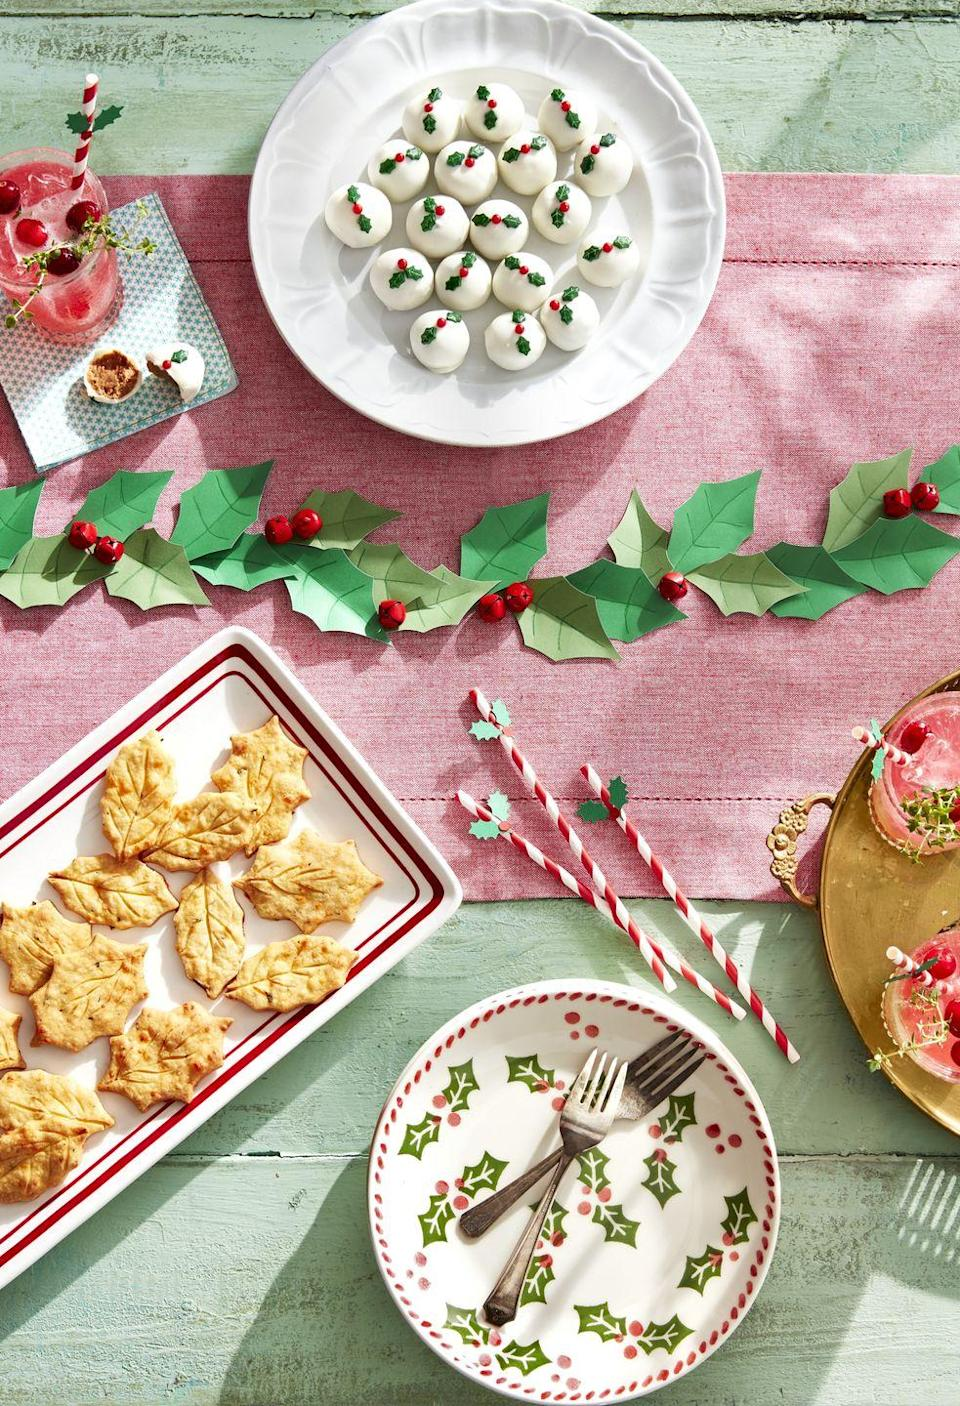 """<p>The classic holly berry just might be one of the most recognizable signs of the season. In this party idea, it's highlighted in nearly every part of the table, from the straws to the vintage plates and even the <a href=""""https://www.countryliving.com/food-drinks/a29640166/white-chocolate-truffles-recipe/"""" rel=""""nofollow noopener"""" target=""""_blank"""" data-ylk=""""slk:white chocolate truffles"""" class=""""link rapid-noclick-resp"""">white chocolate truffles</a>.</p><p><a class=""""link rapid-noclick-resp"""" href=""""https://www.amazon.com/Wilton-W5085-Sprinkles-3oz-Holly/dp/B0761XS1V7?tag=syn-yahoo-20&ascsubtag=%5Bartid%7C10050.g.2218%5Bsrc%7Cyahoo-us"""" rel=""""nofollow noopener"""" target=""""_blank"""" data-ylk=""""slk:SHOP HOLLY BERRY SPRINKLES"""">SHOP HOLLY BERRY SPRINKLES</a></p>"""